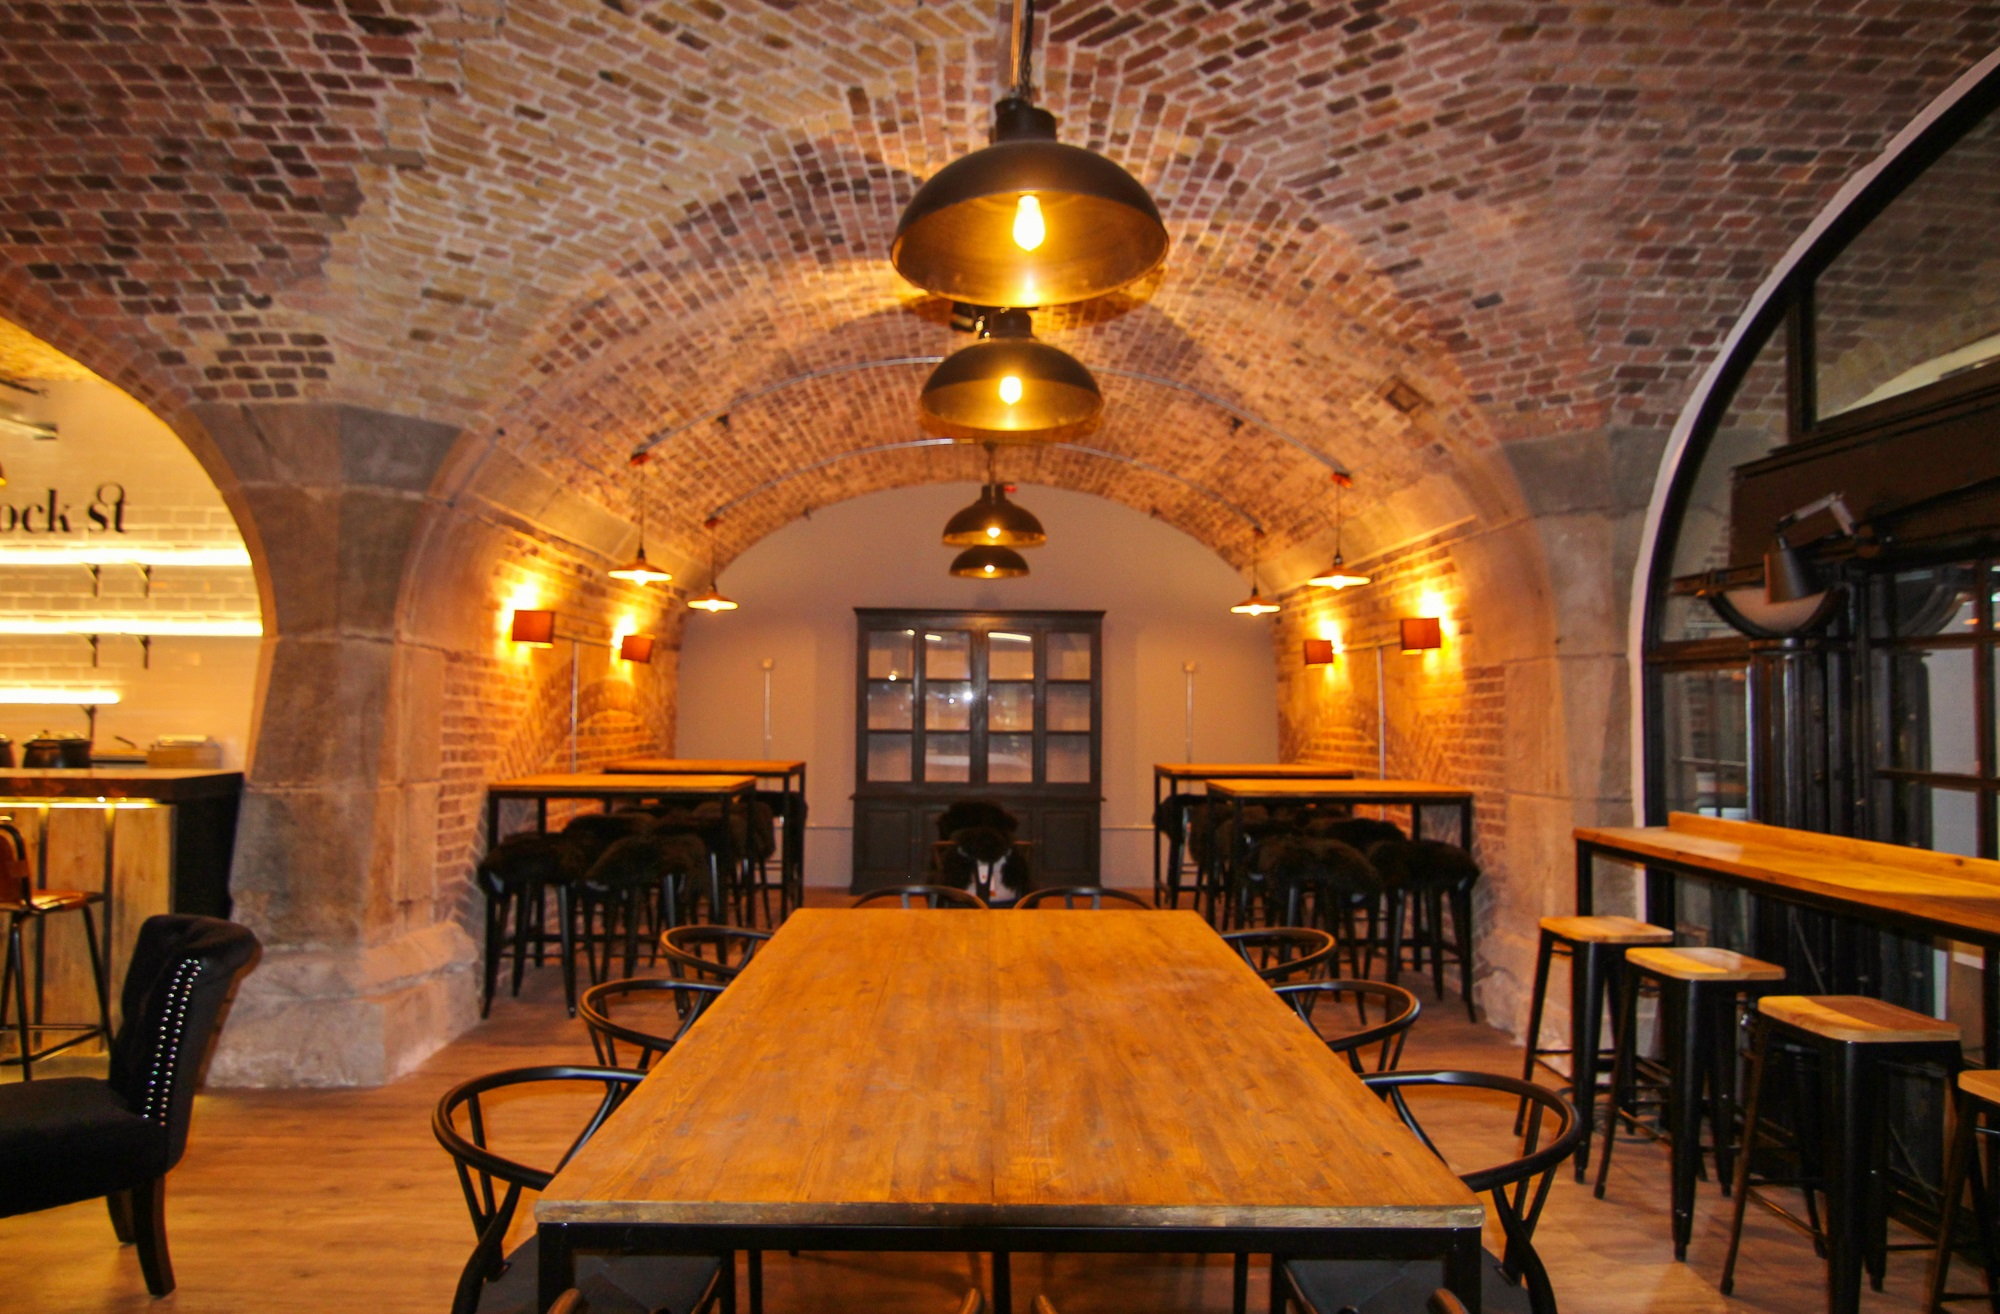 tables and chairs located in a room with an exposed brick ceiling